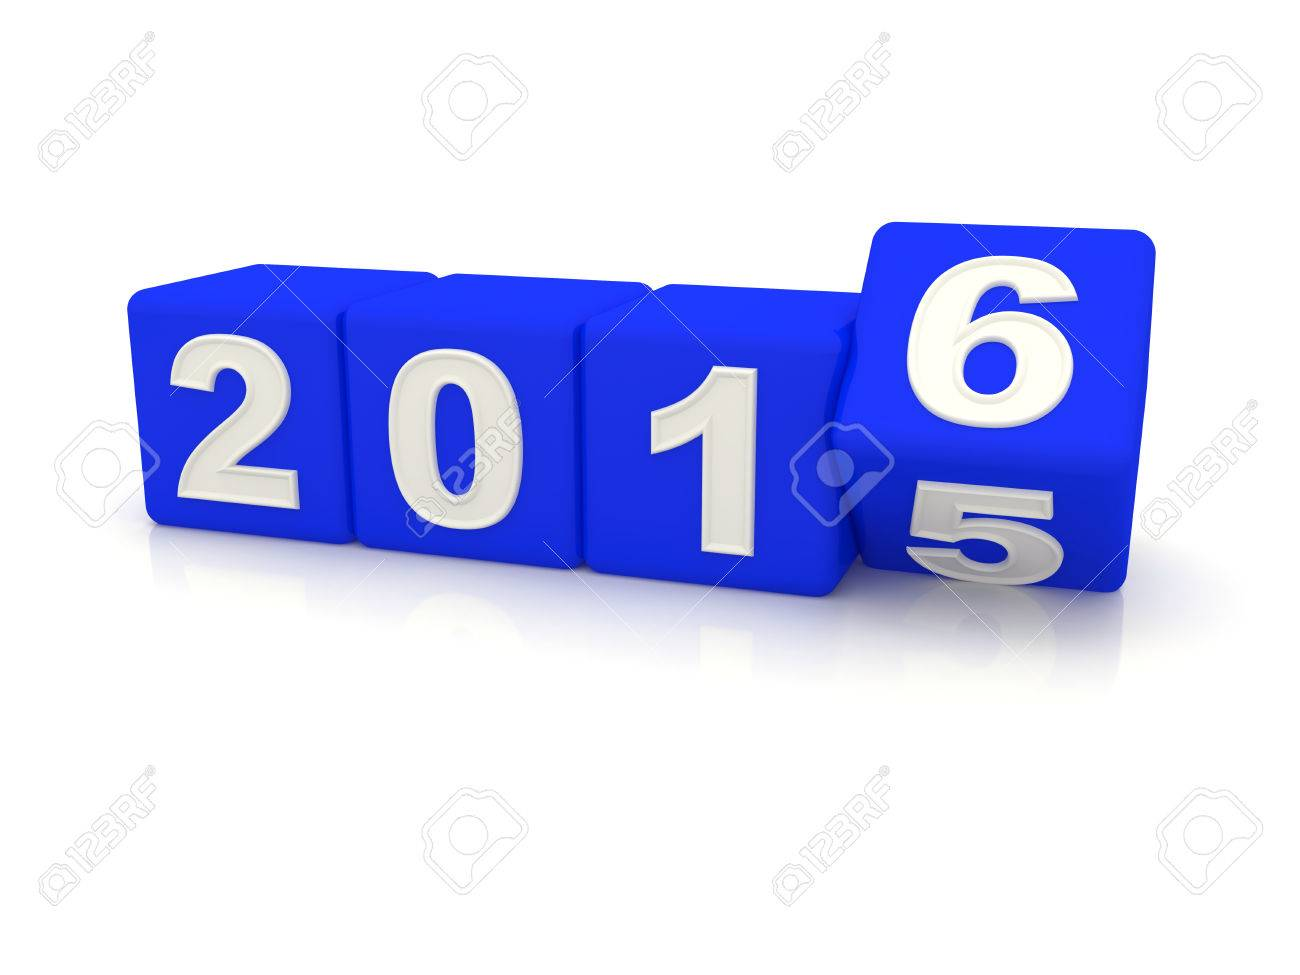 New year images 2016 3d